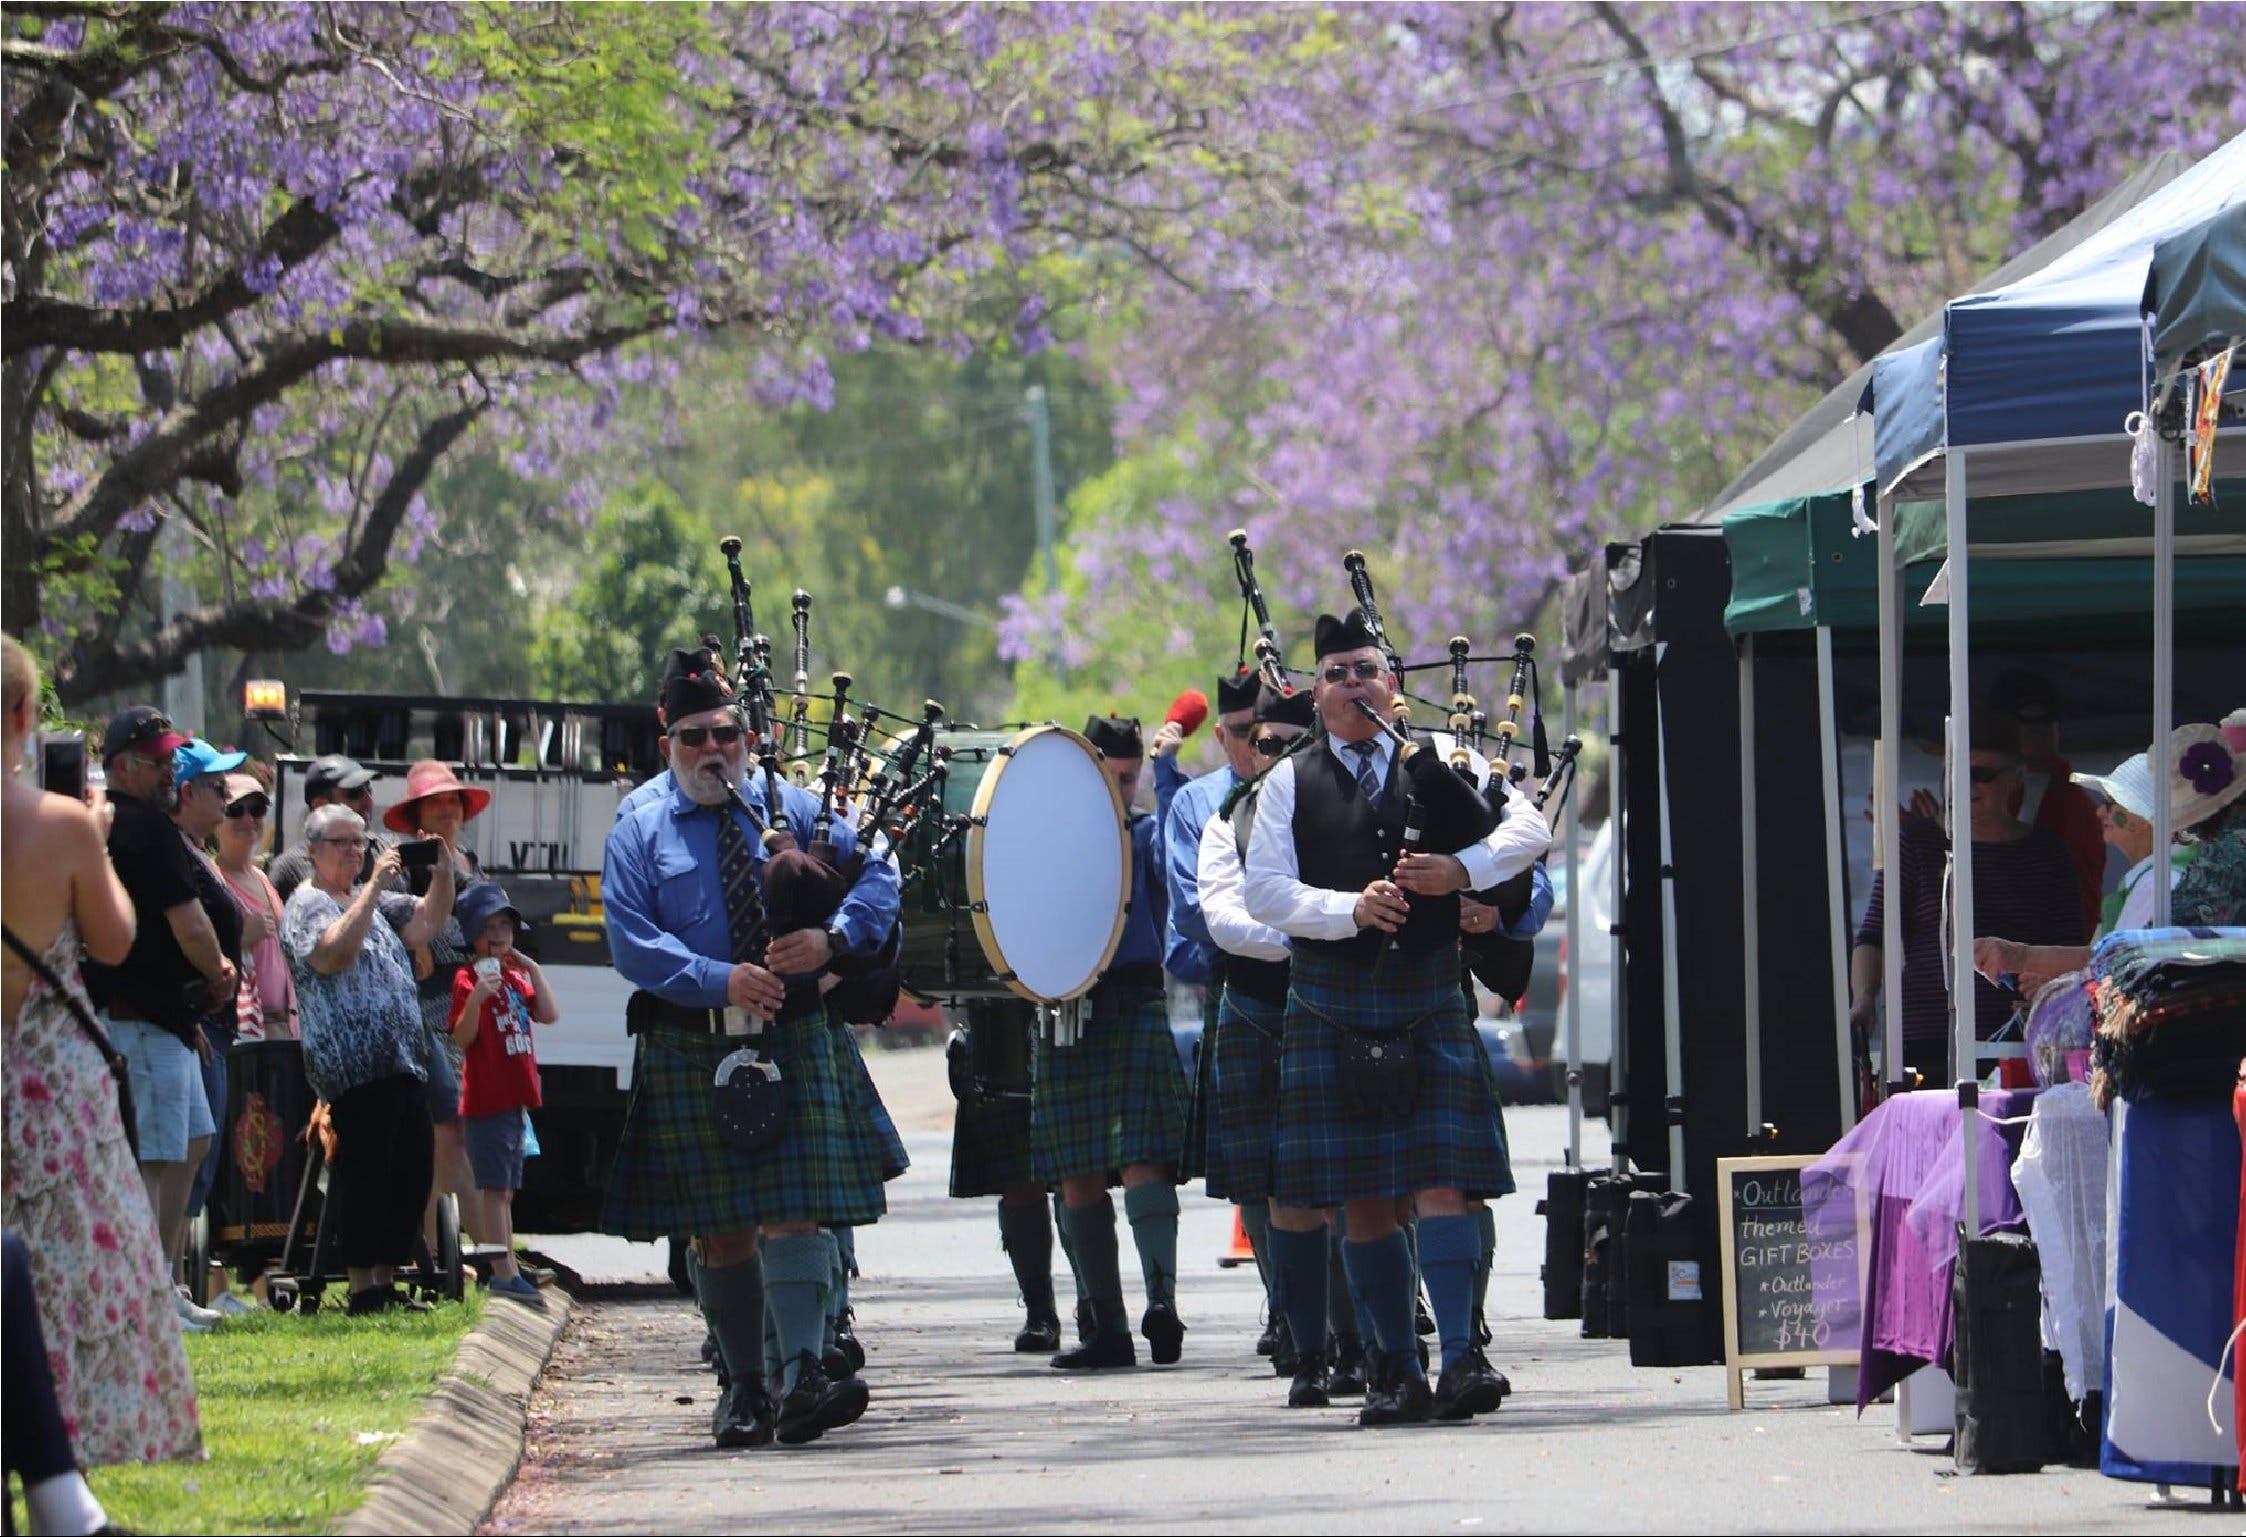 Celtic Festival of Queensland - Accommodation Perth